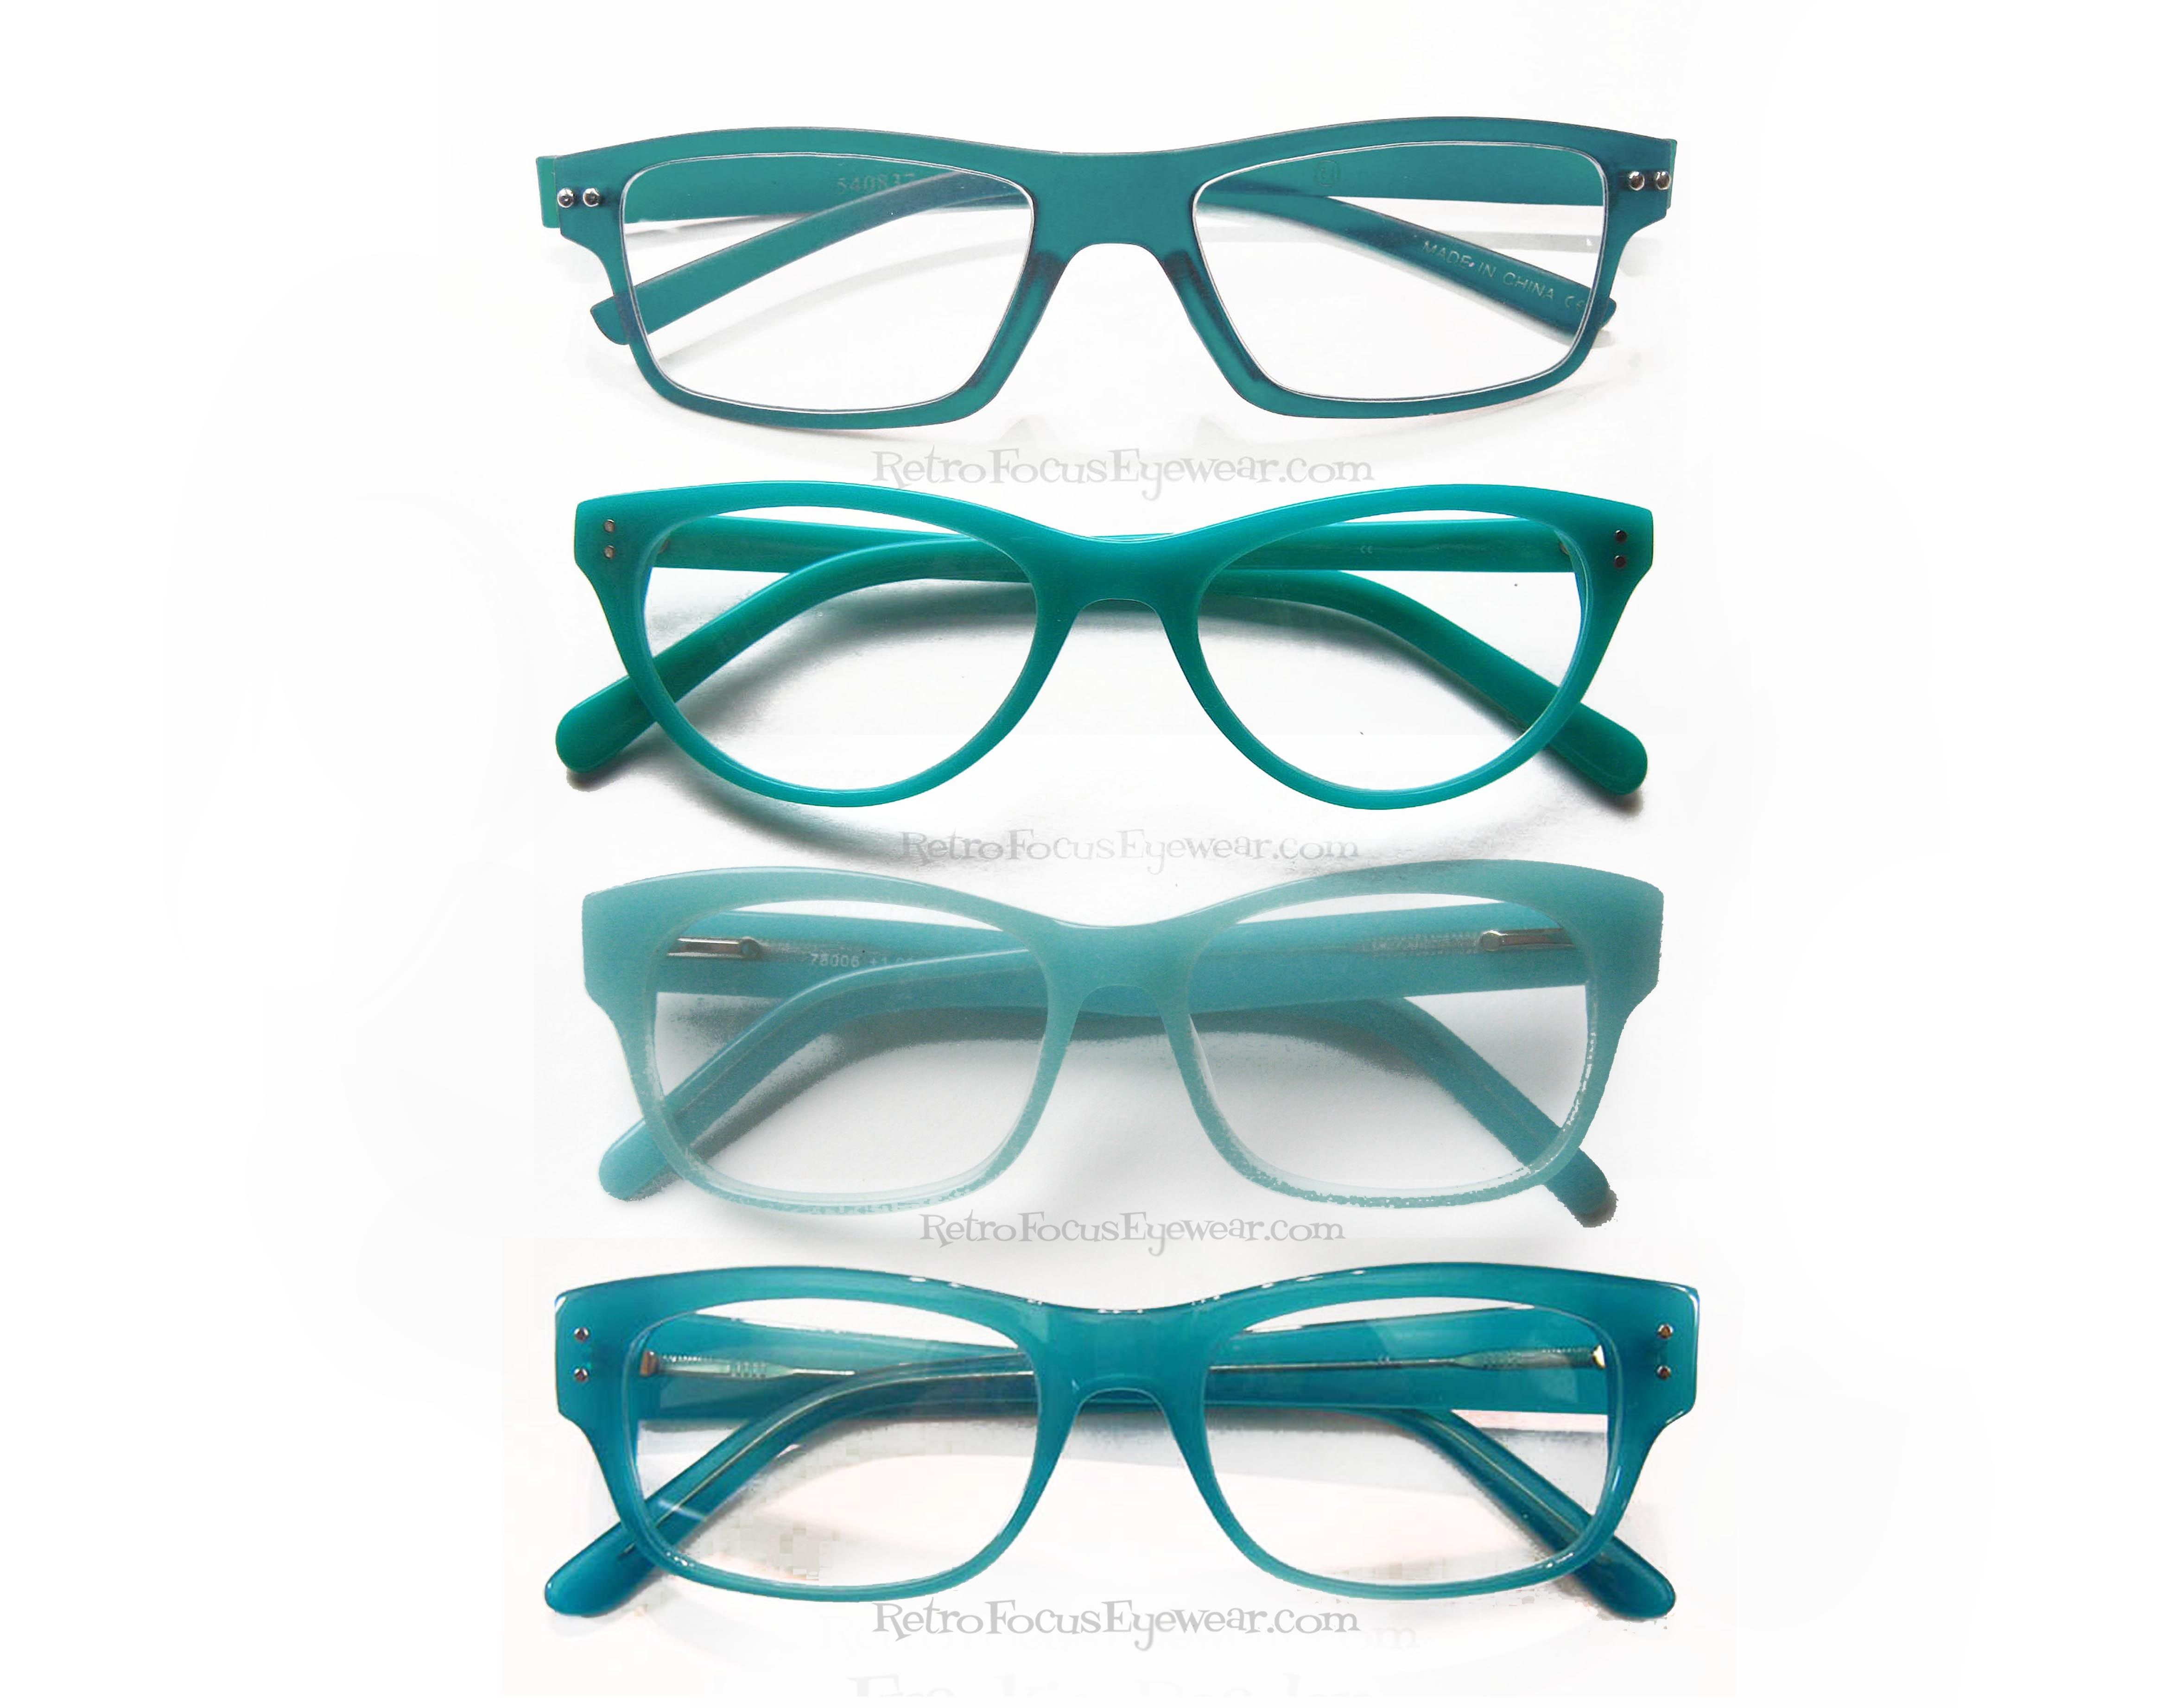 all about aqua turquoise eyewear trending for 2014